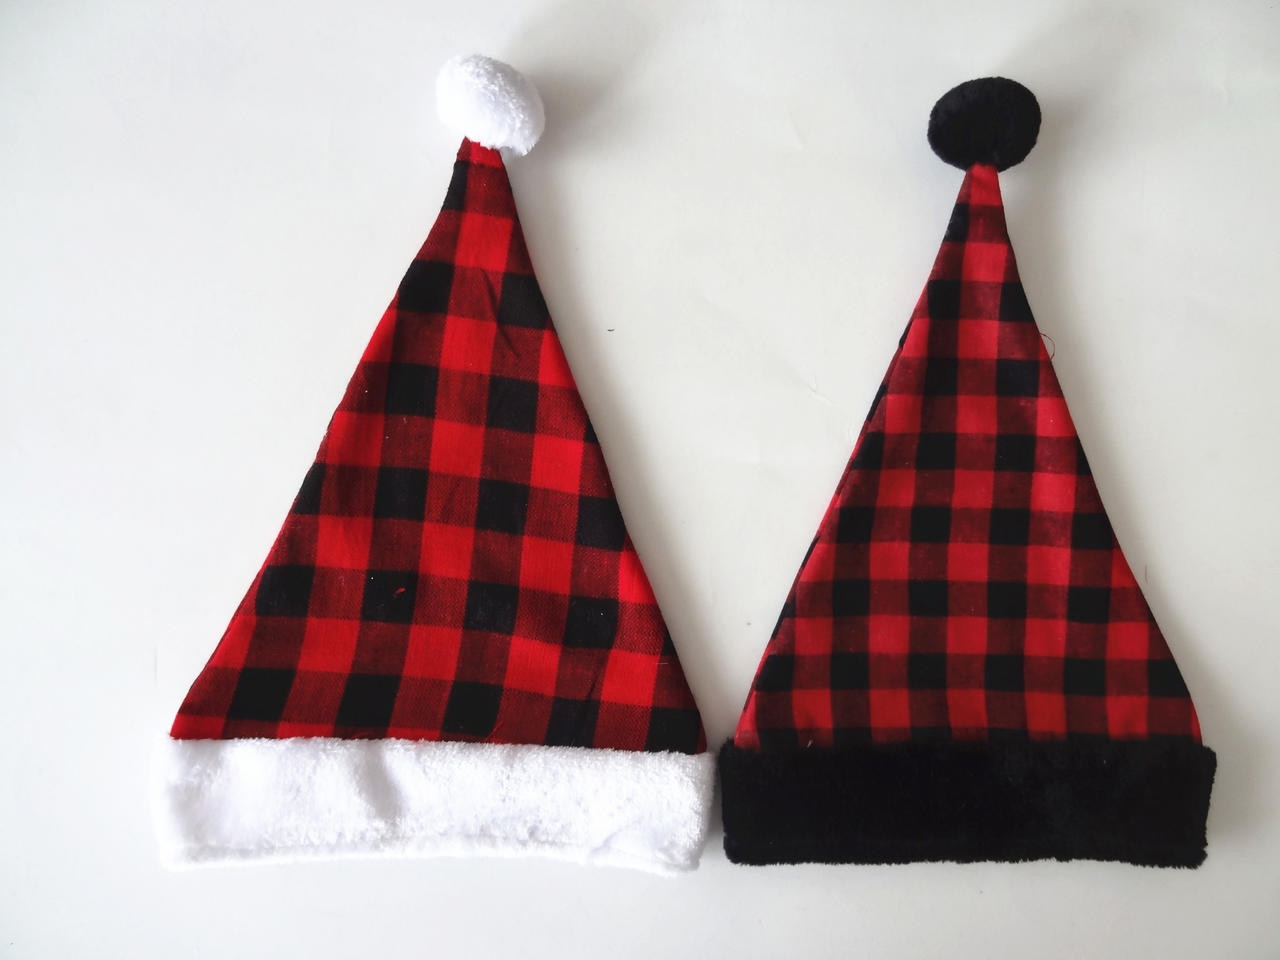 Christmas Hats Grating Hats Red Black Hats